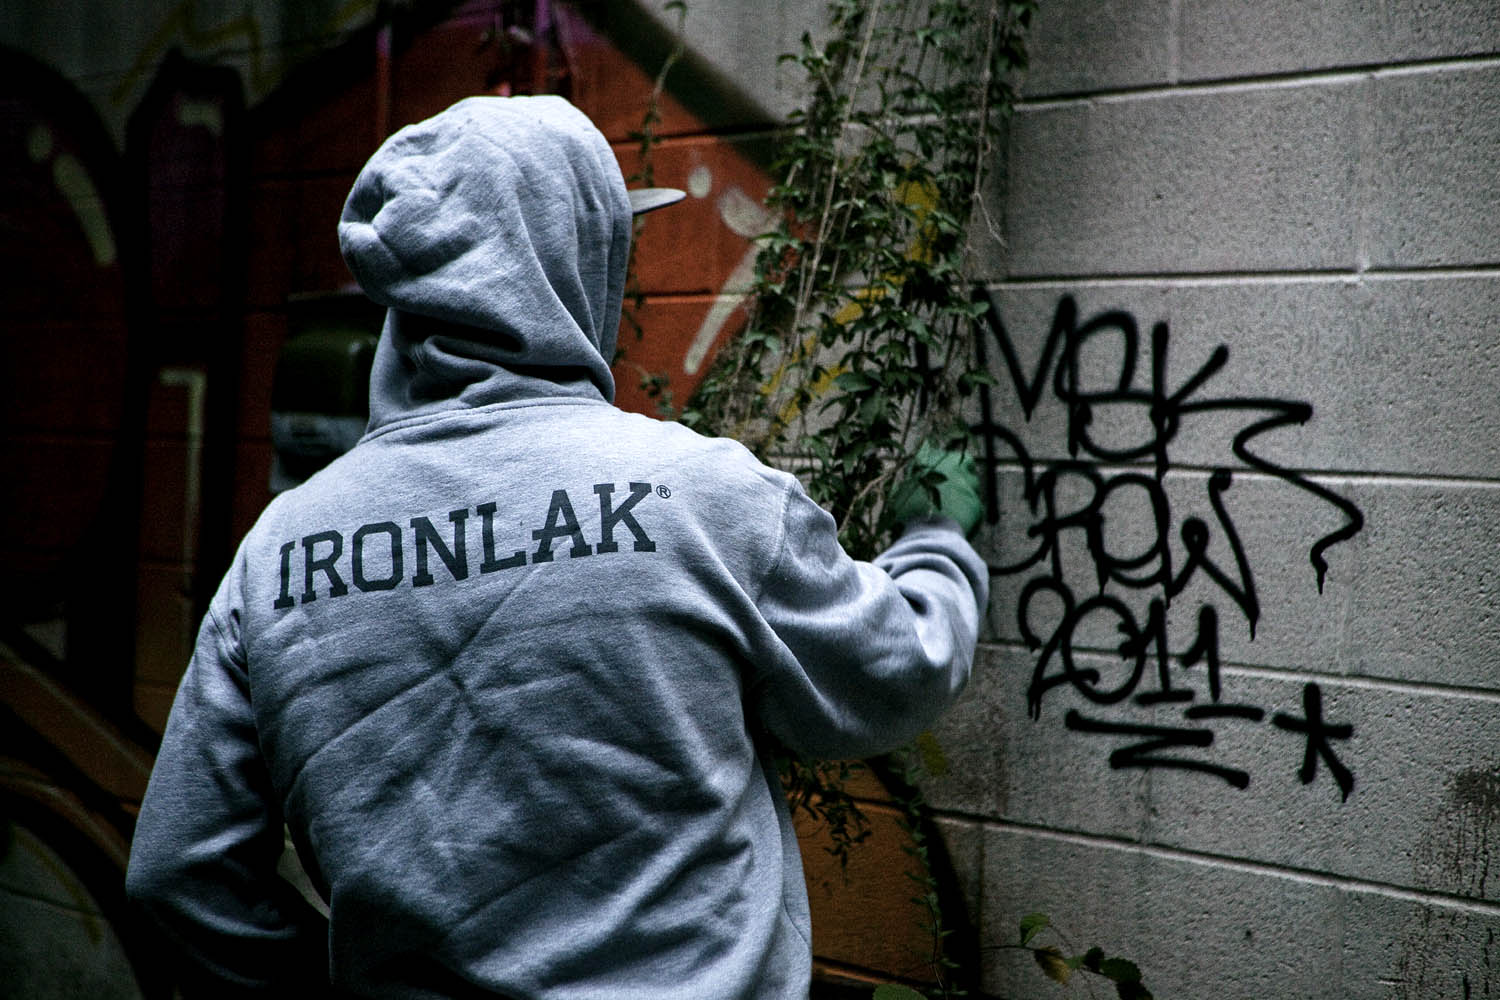 IronlakXmasLookBook10 A313 IRONLAK CHRISTMAS 2011 LOOKBOOK